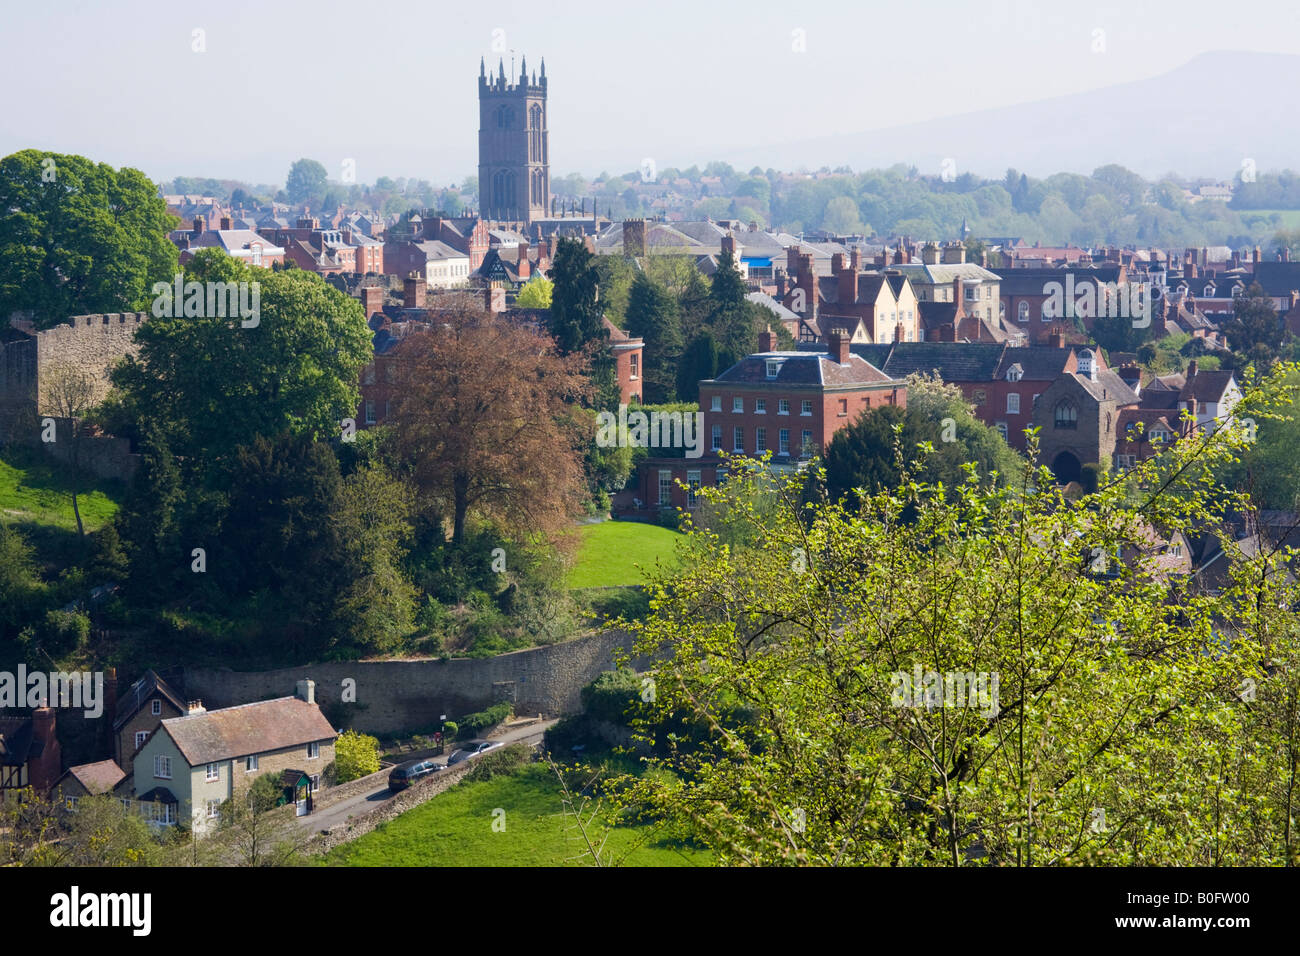 Overview of old town buildings with St Laurence's church tower. Ludlow Shropshire West Midlands England UK Britain - Stock Image